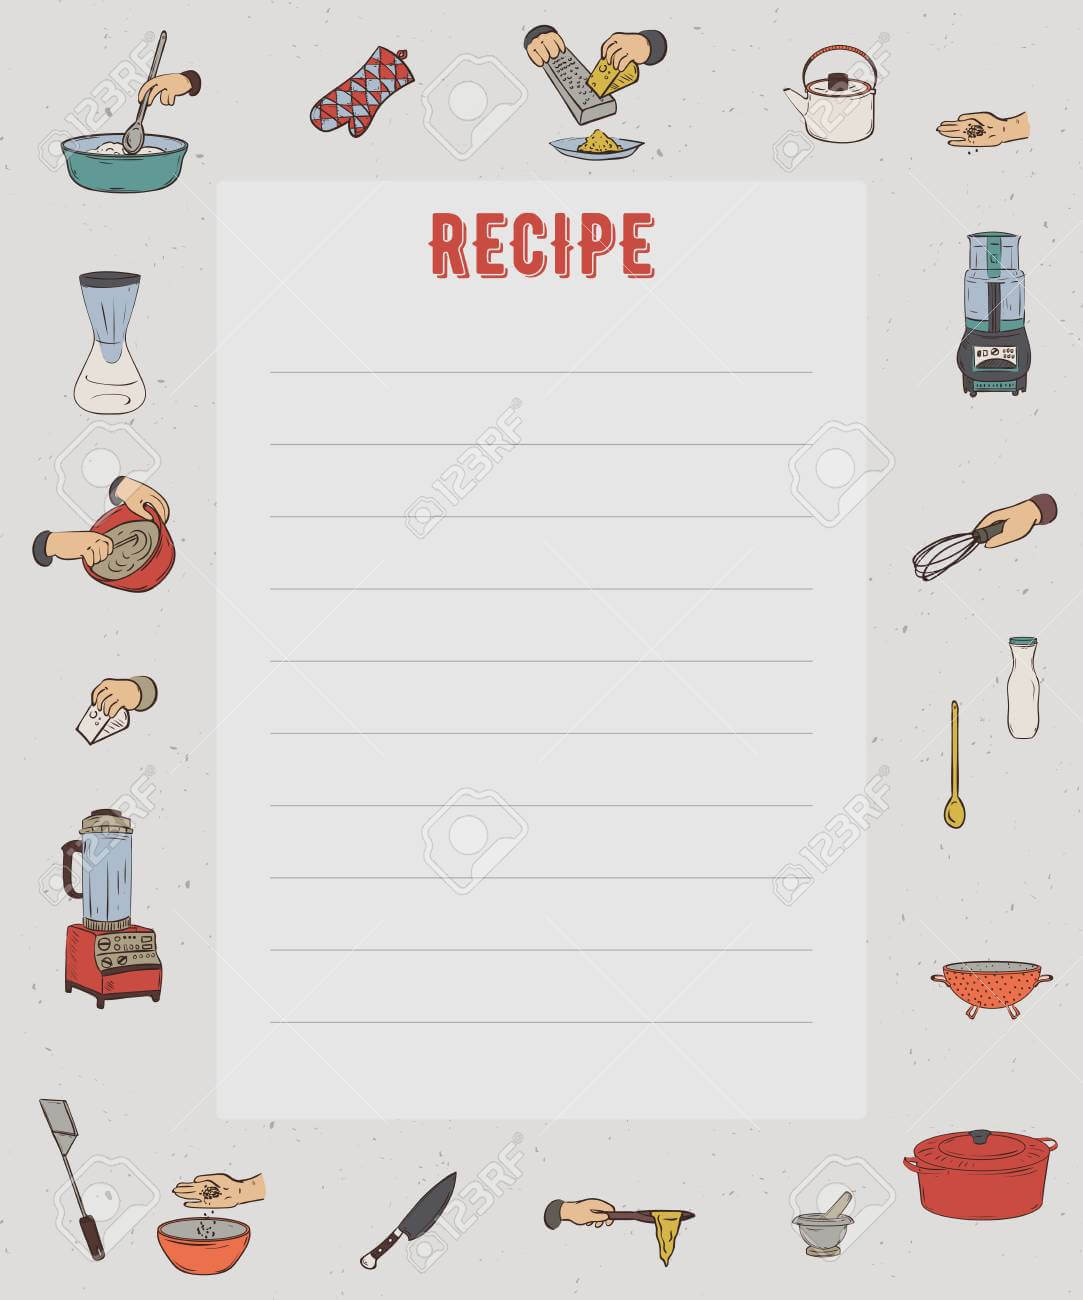 Recipe Card. Cookbook Page. Design Template With Kitchen Utensils.. for Recipe Card Design Template